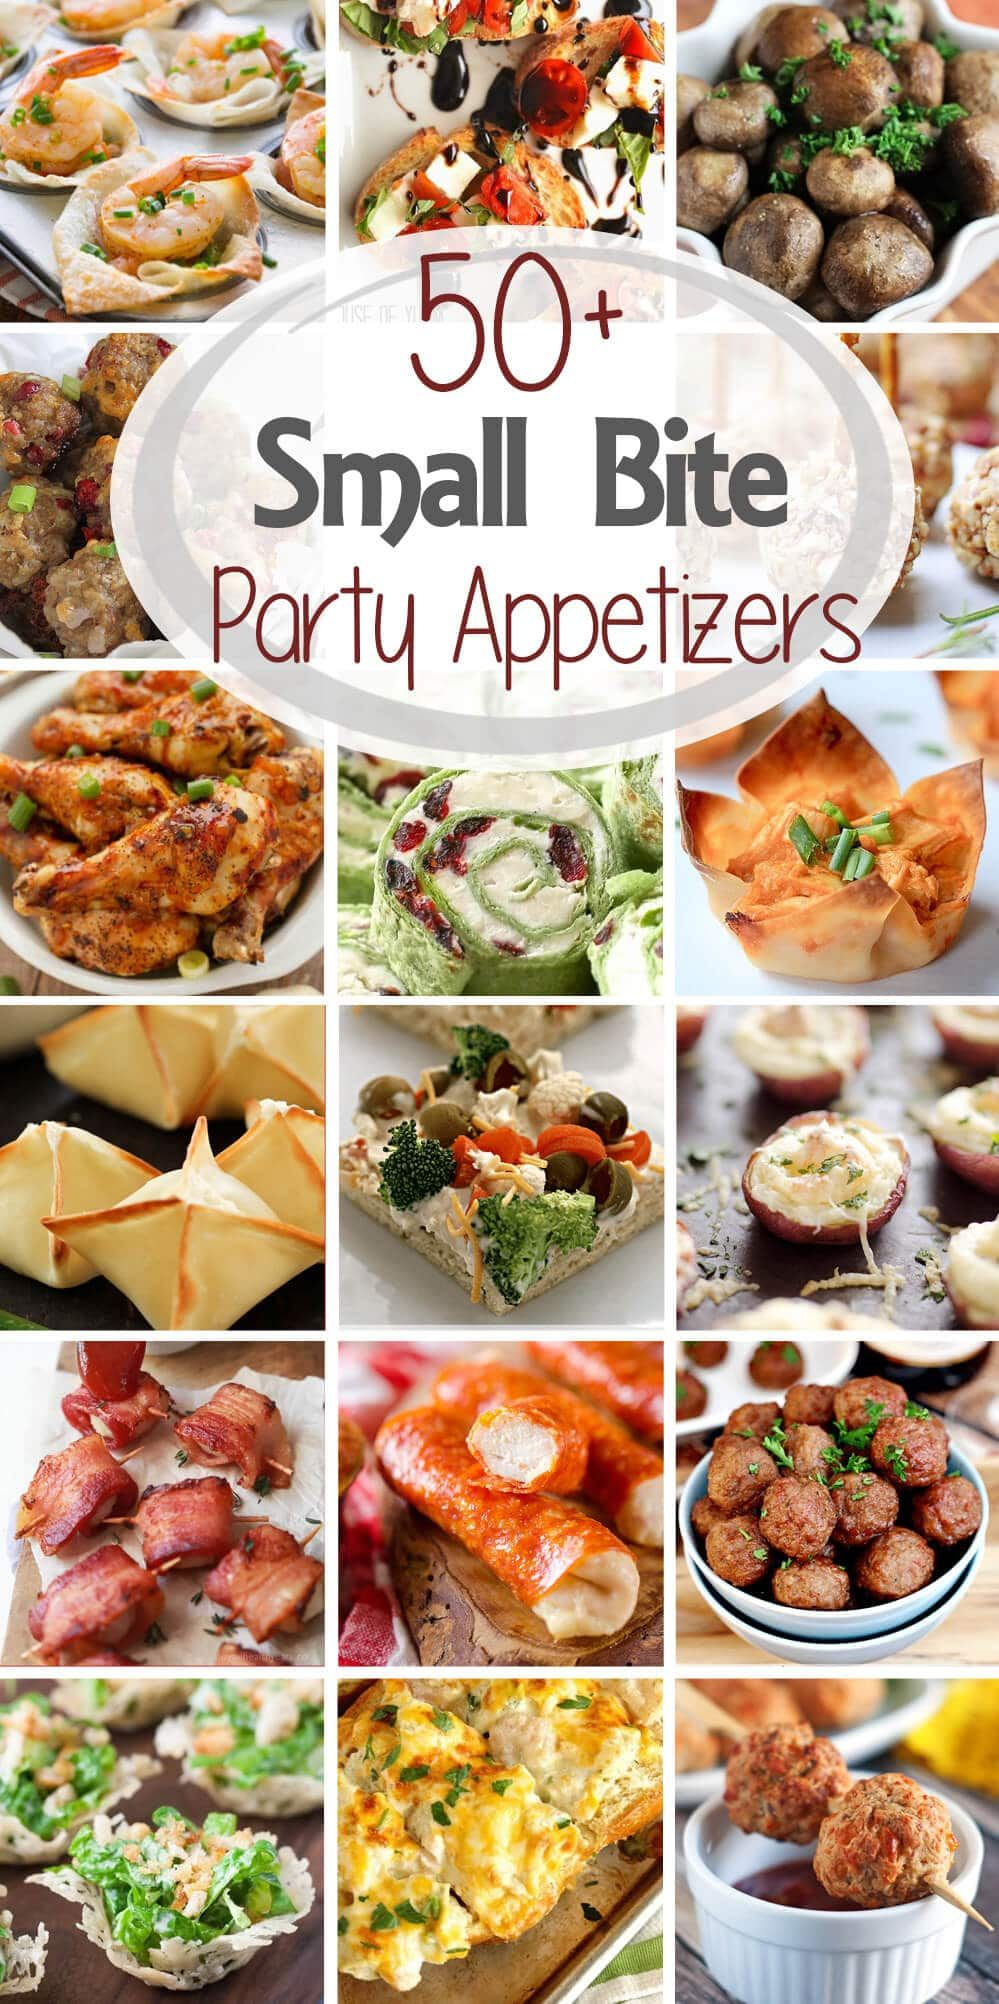 Appetizer Ideas For 50th Birthday Party